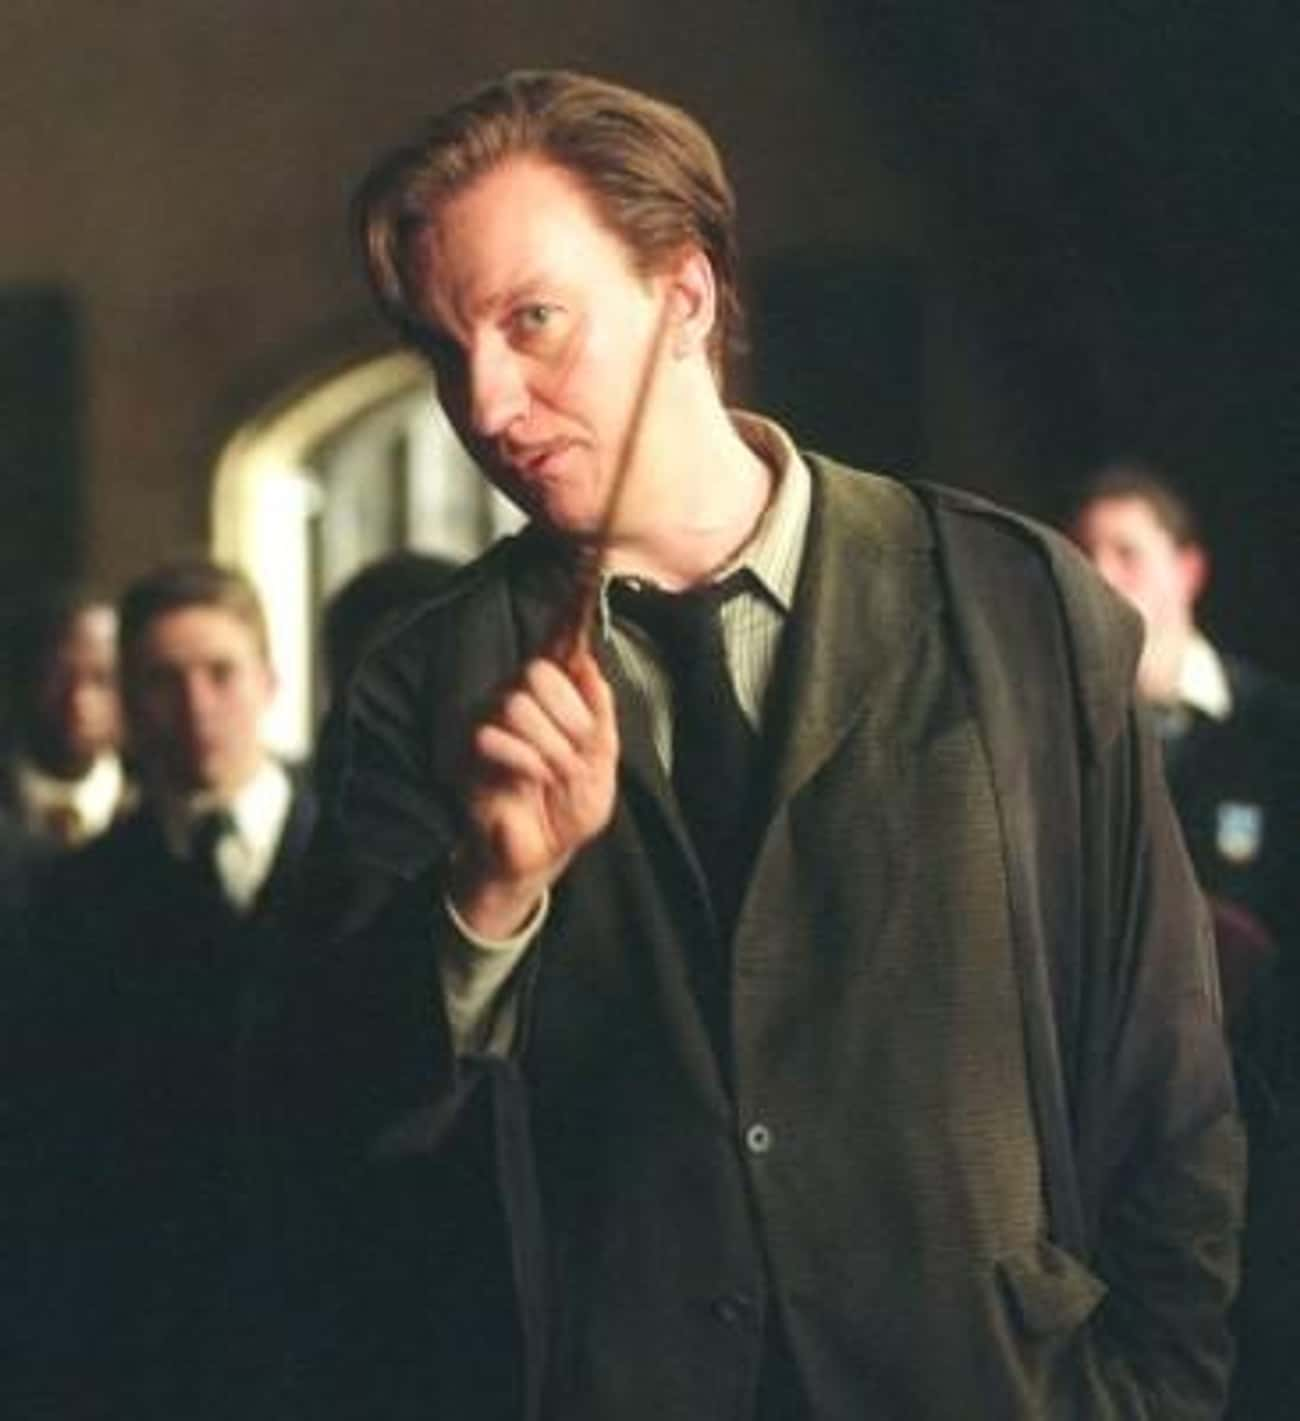 Remus Lupin is listed (or ranked) 1 on the list All the Defense Against the Dark Arts Teachers, Ranked